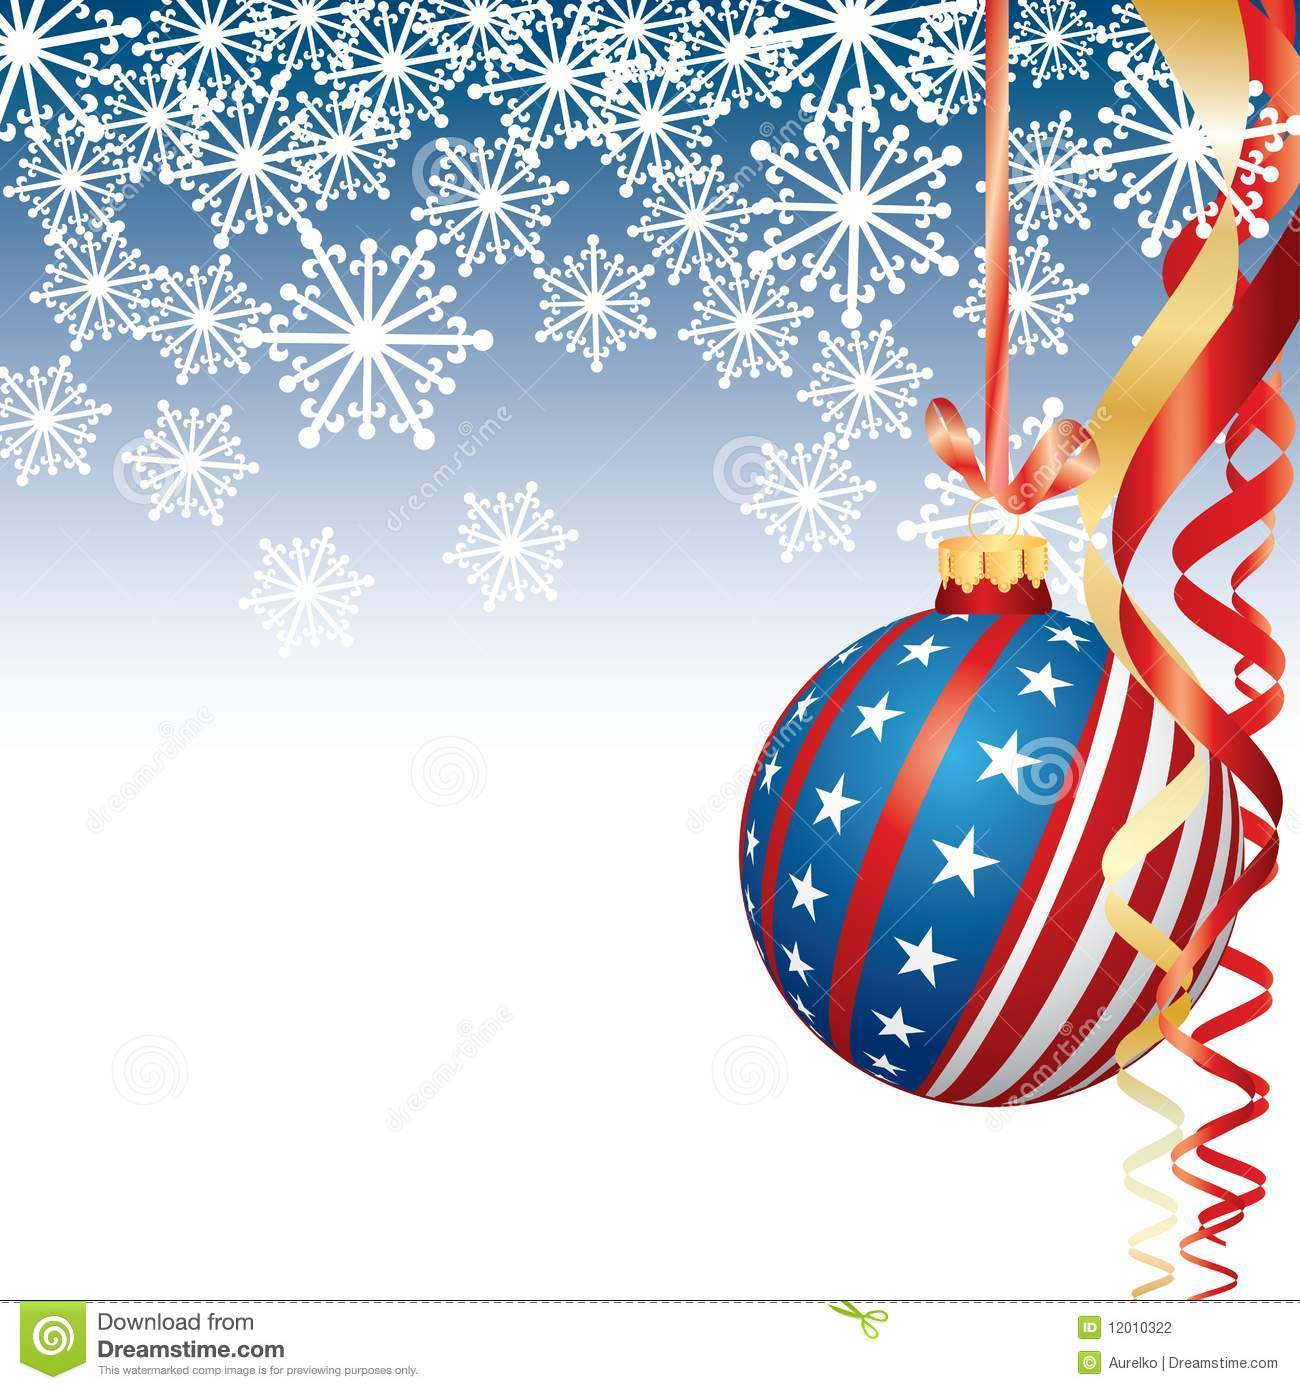 Patriotic Christmas stock vector. Illustration of concepts - 12010322